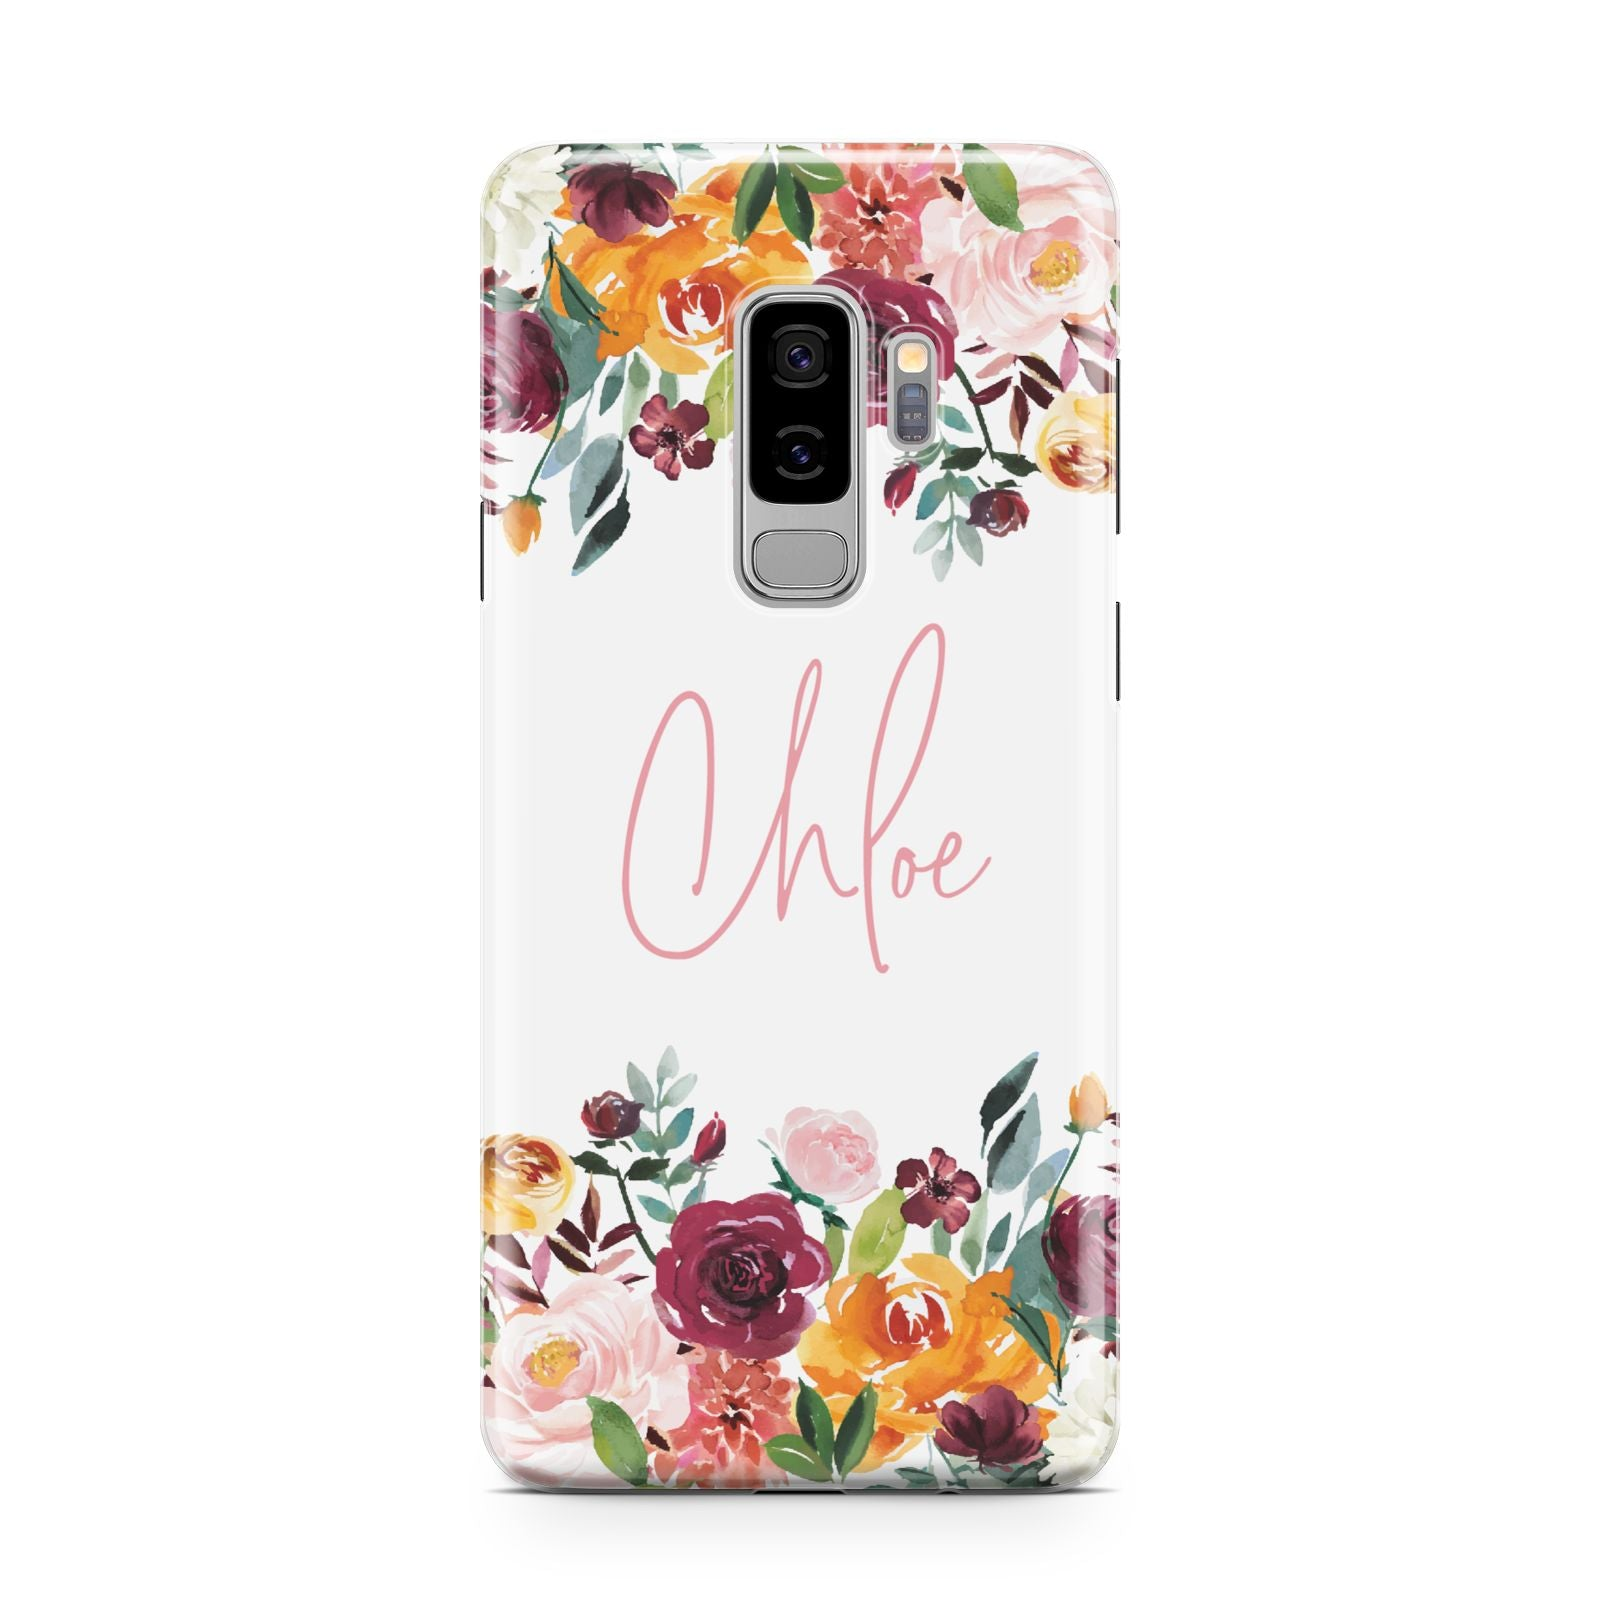 Personalised Name Transparent Flowers Samsung Galaxy S9 Plus Case on Silver phone